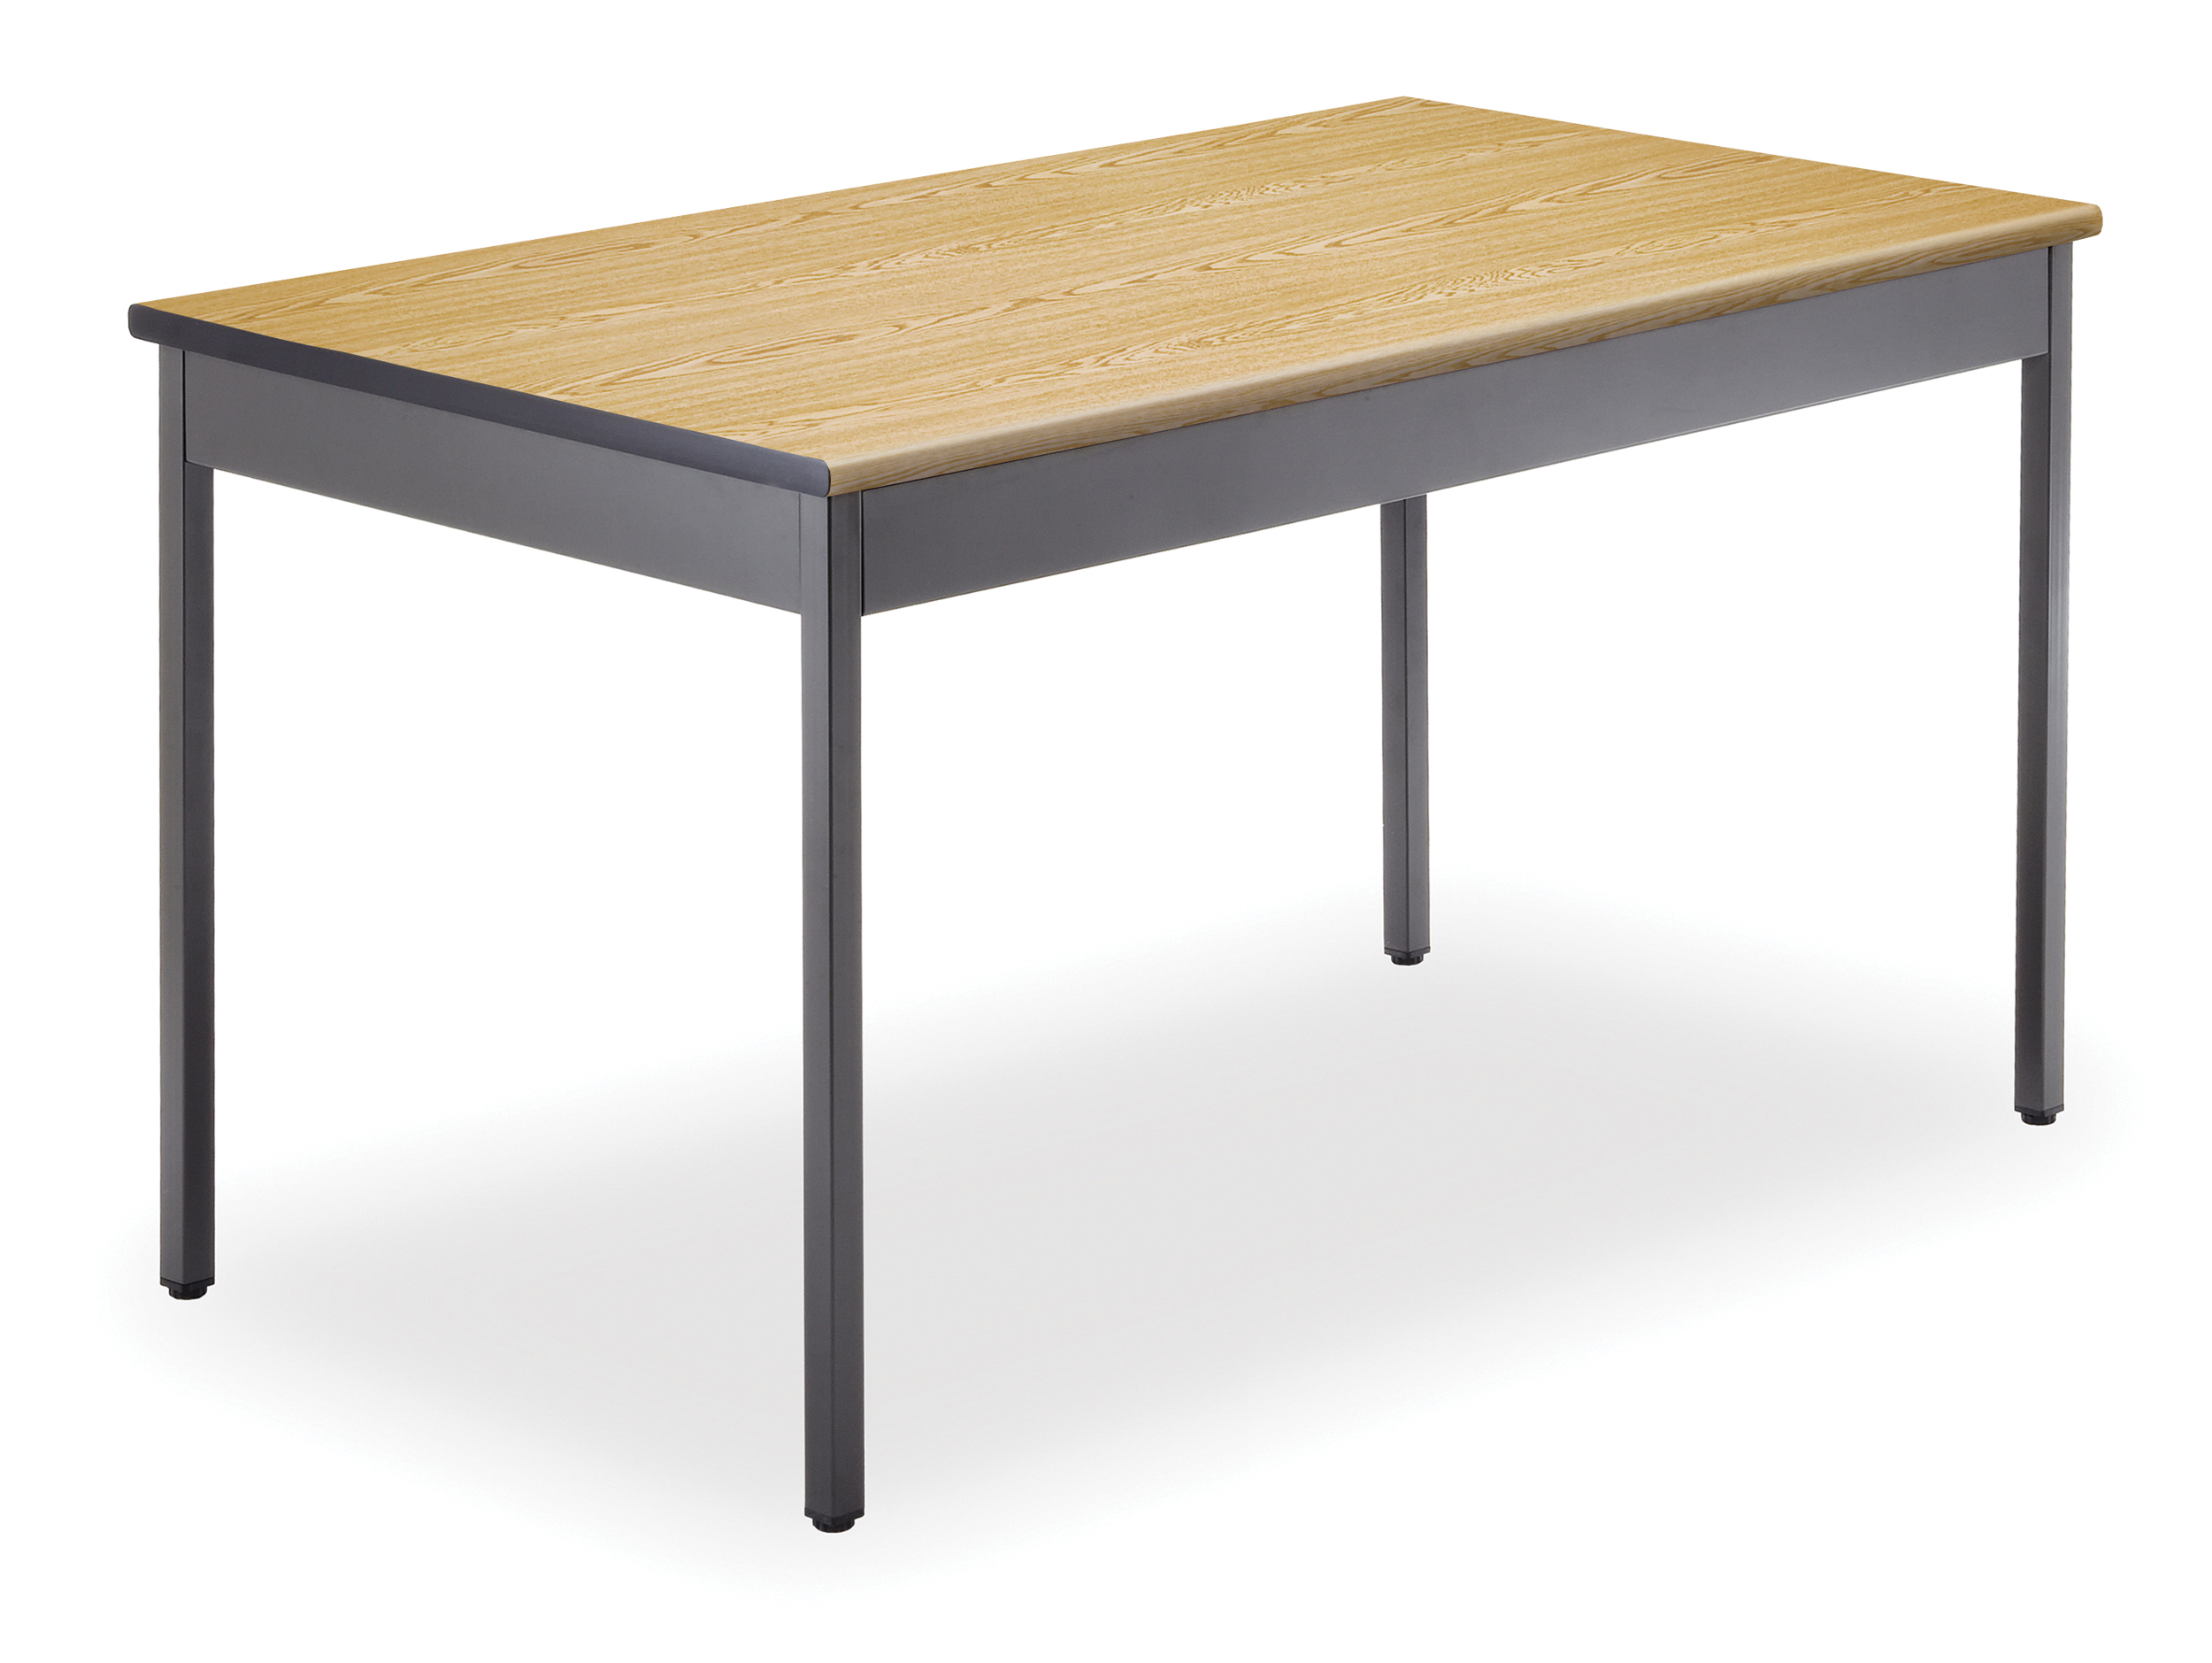 Superieur OFM Adapt Series Rectangle Student Table   25 33u2033 Height Adjustable Desk  With Casters, Gray Nebula (RECT LLC)   Walmart.com